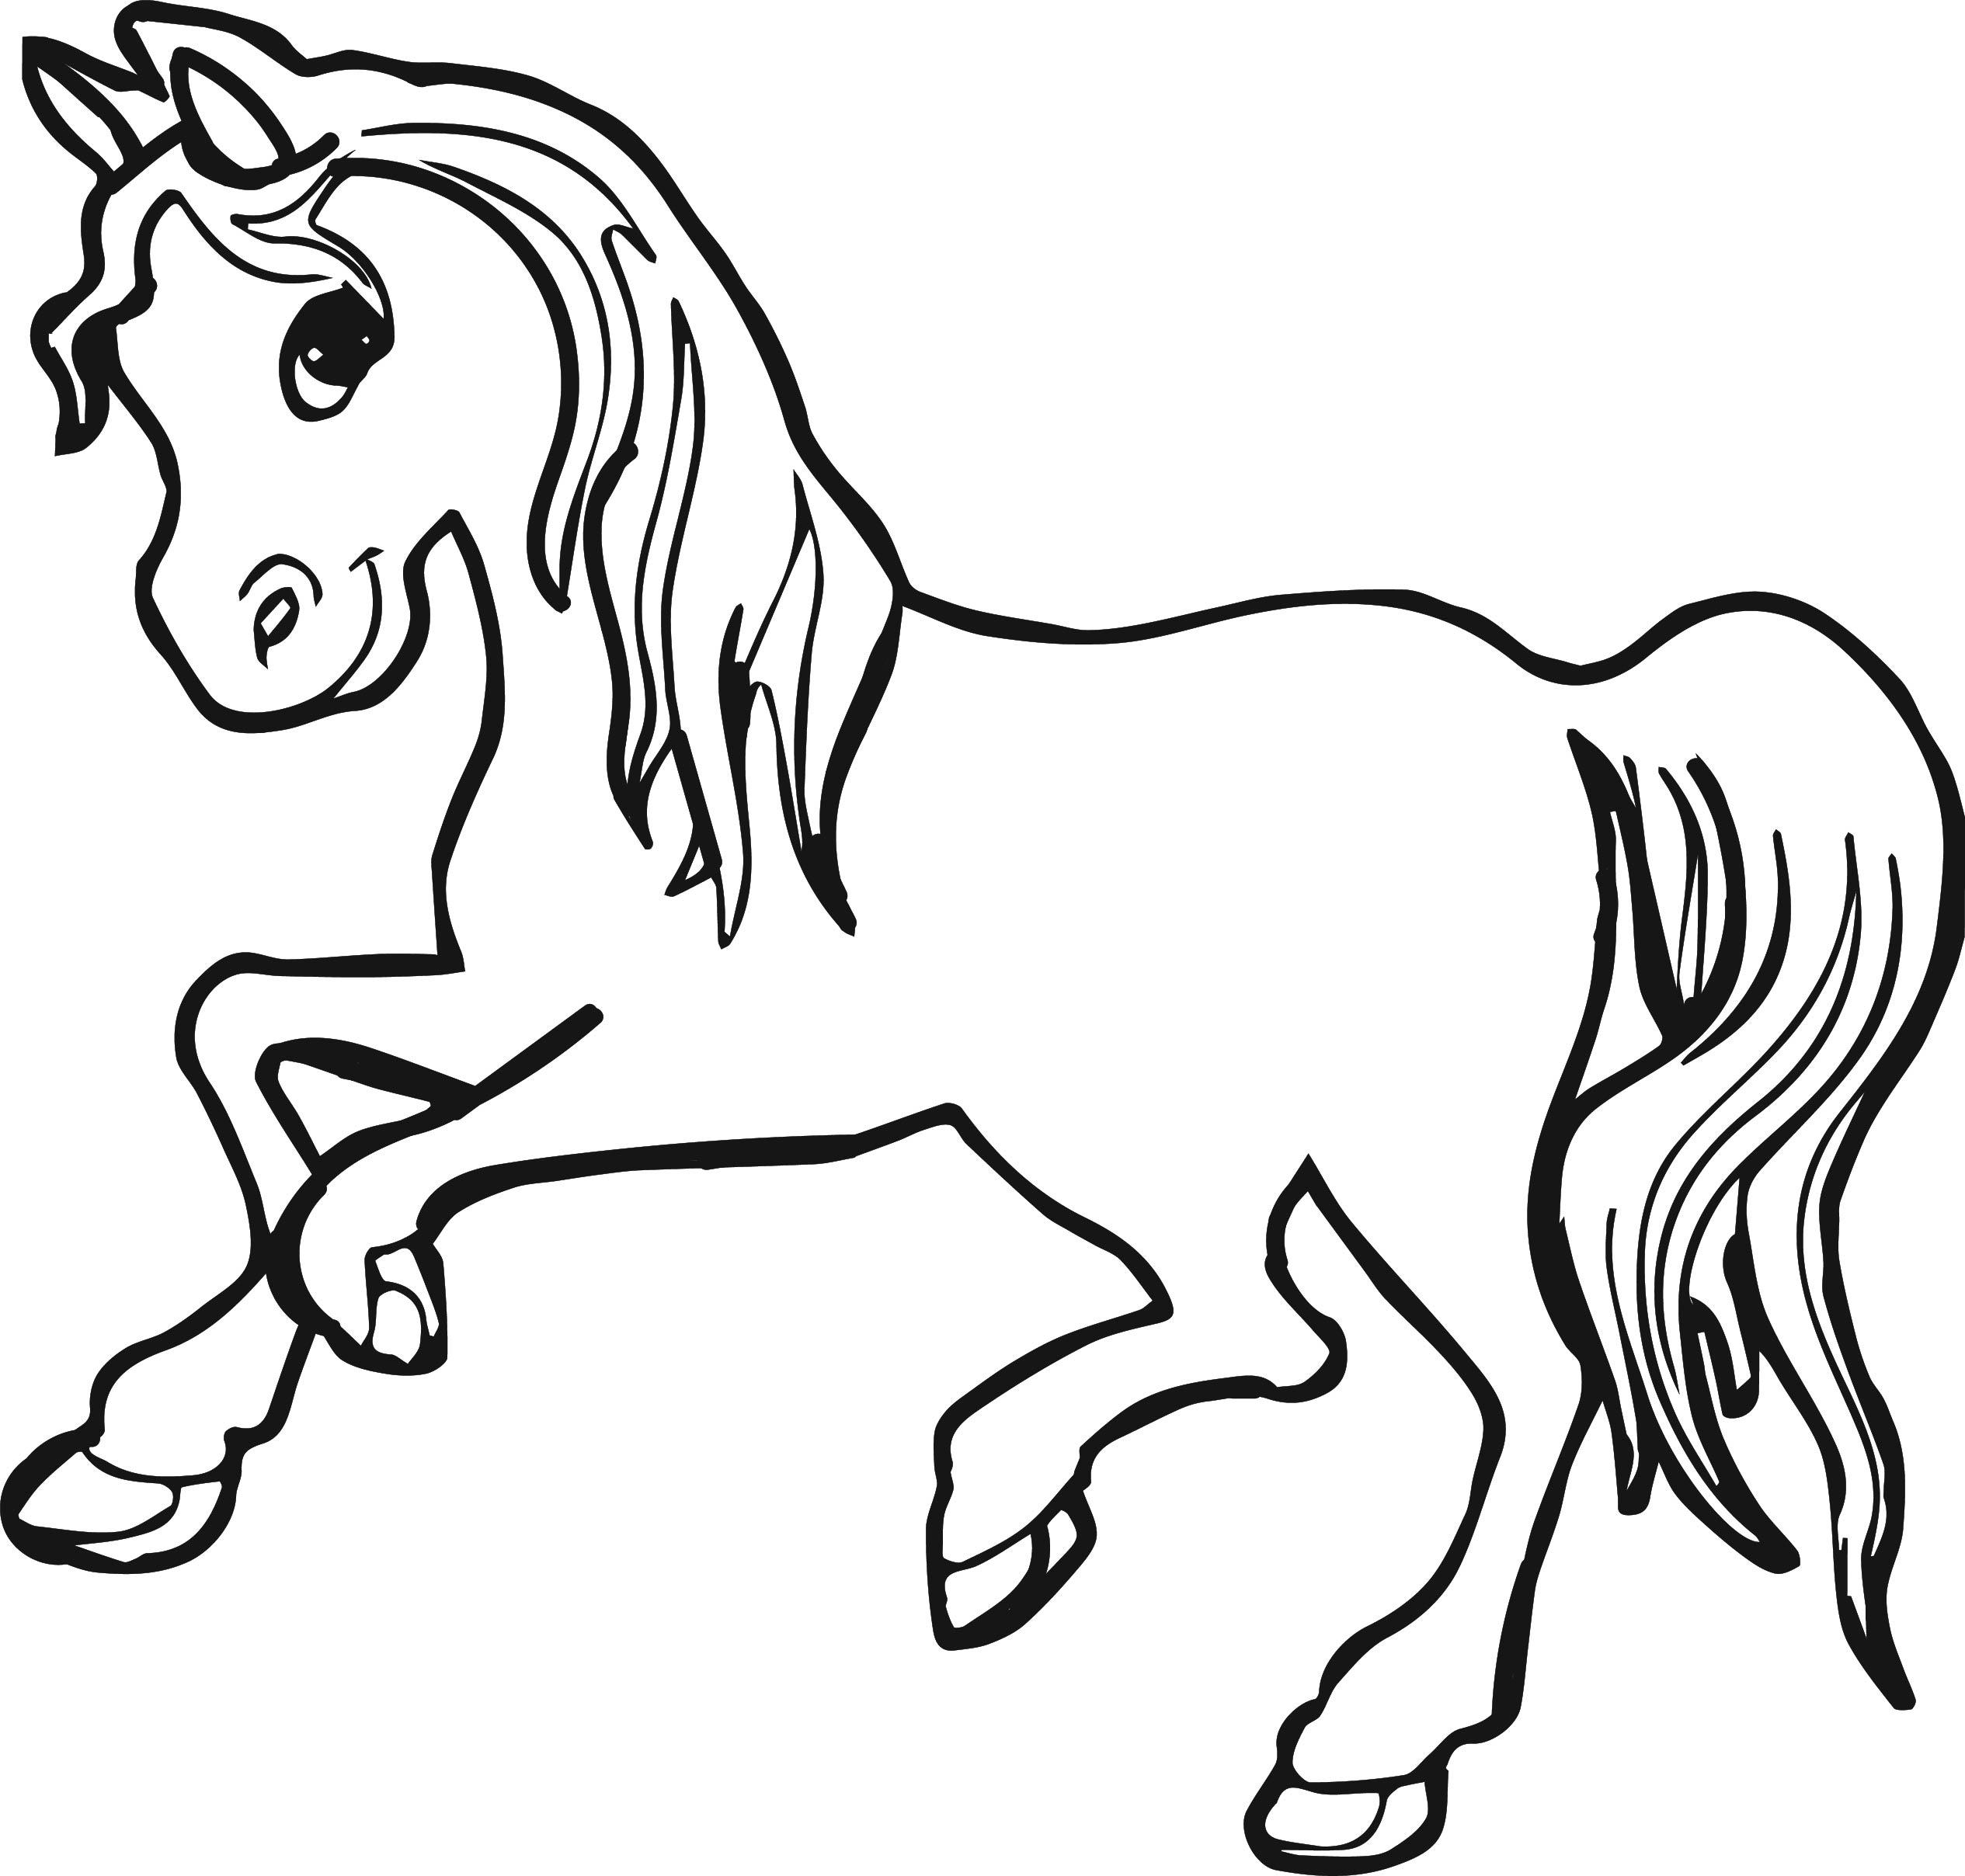 horse for coloring horse coloring pages for kids coloring pages for kids for horse coloring